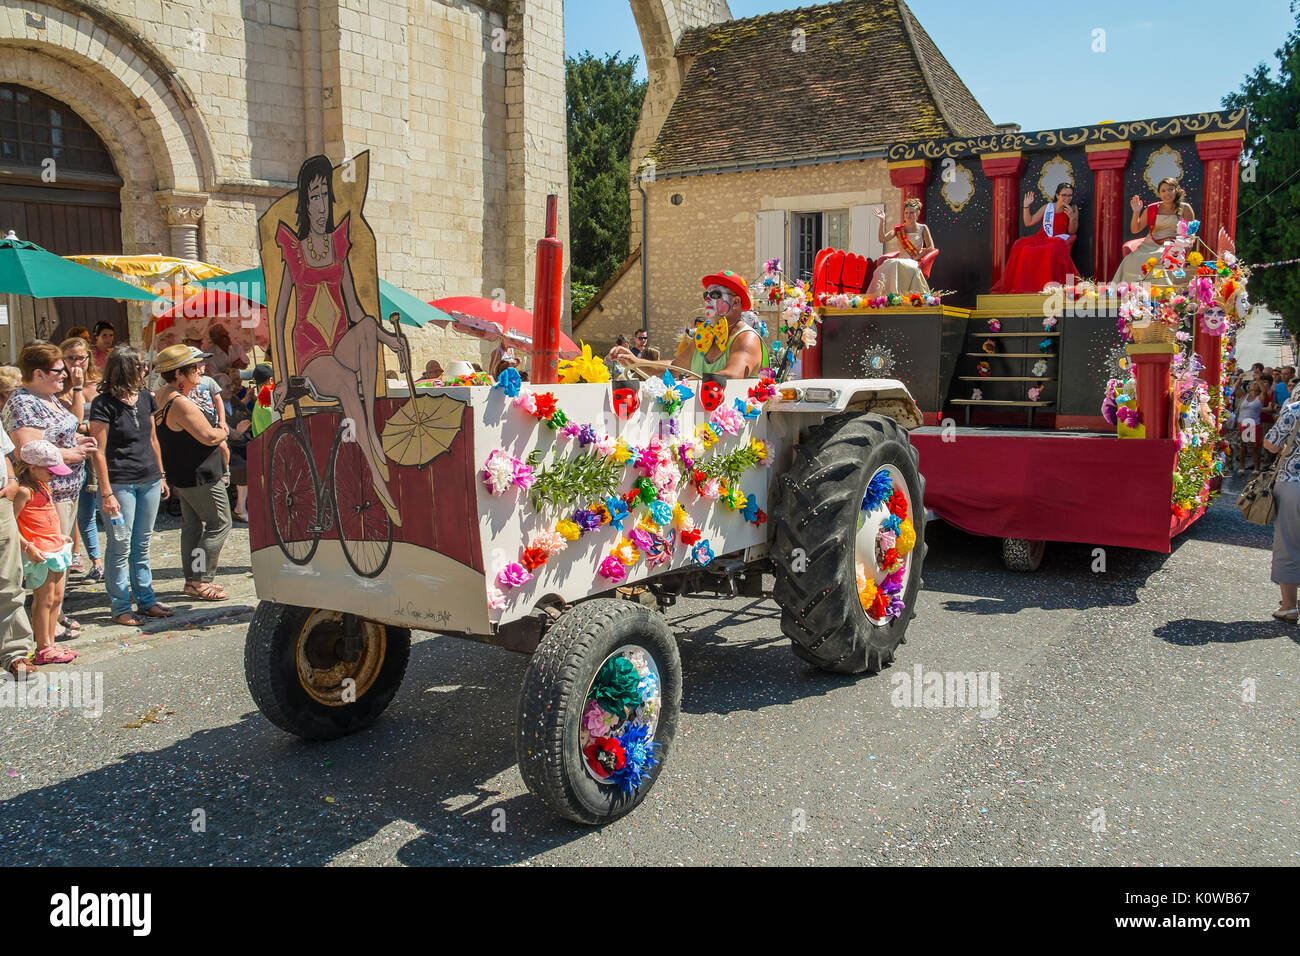 Tractor Decoration Stock Photos Tractor Decoration Stock Images Alamy